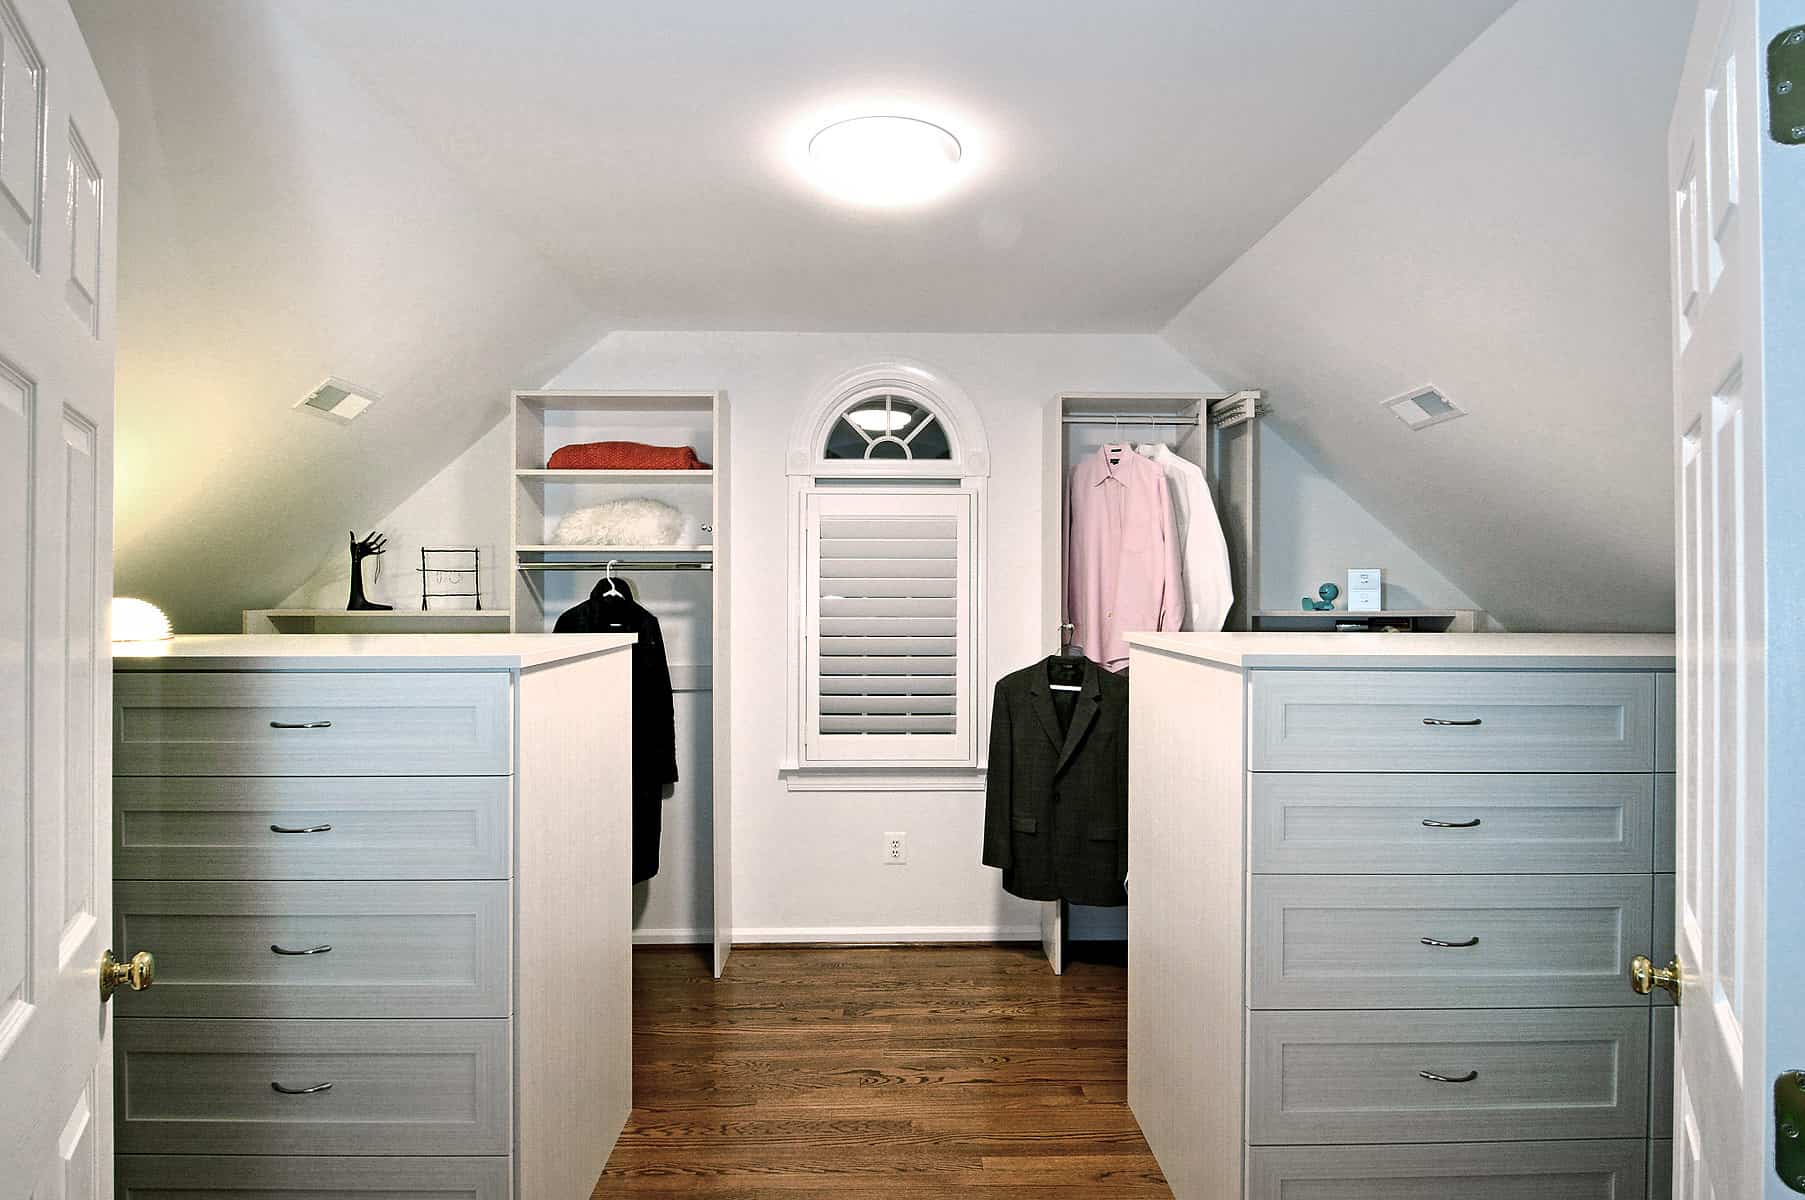 Here's a great example of a walk-in closet built into the attic. It's a great use of space and looks fabulous.